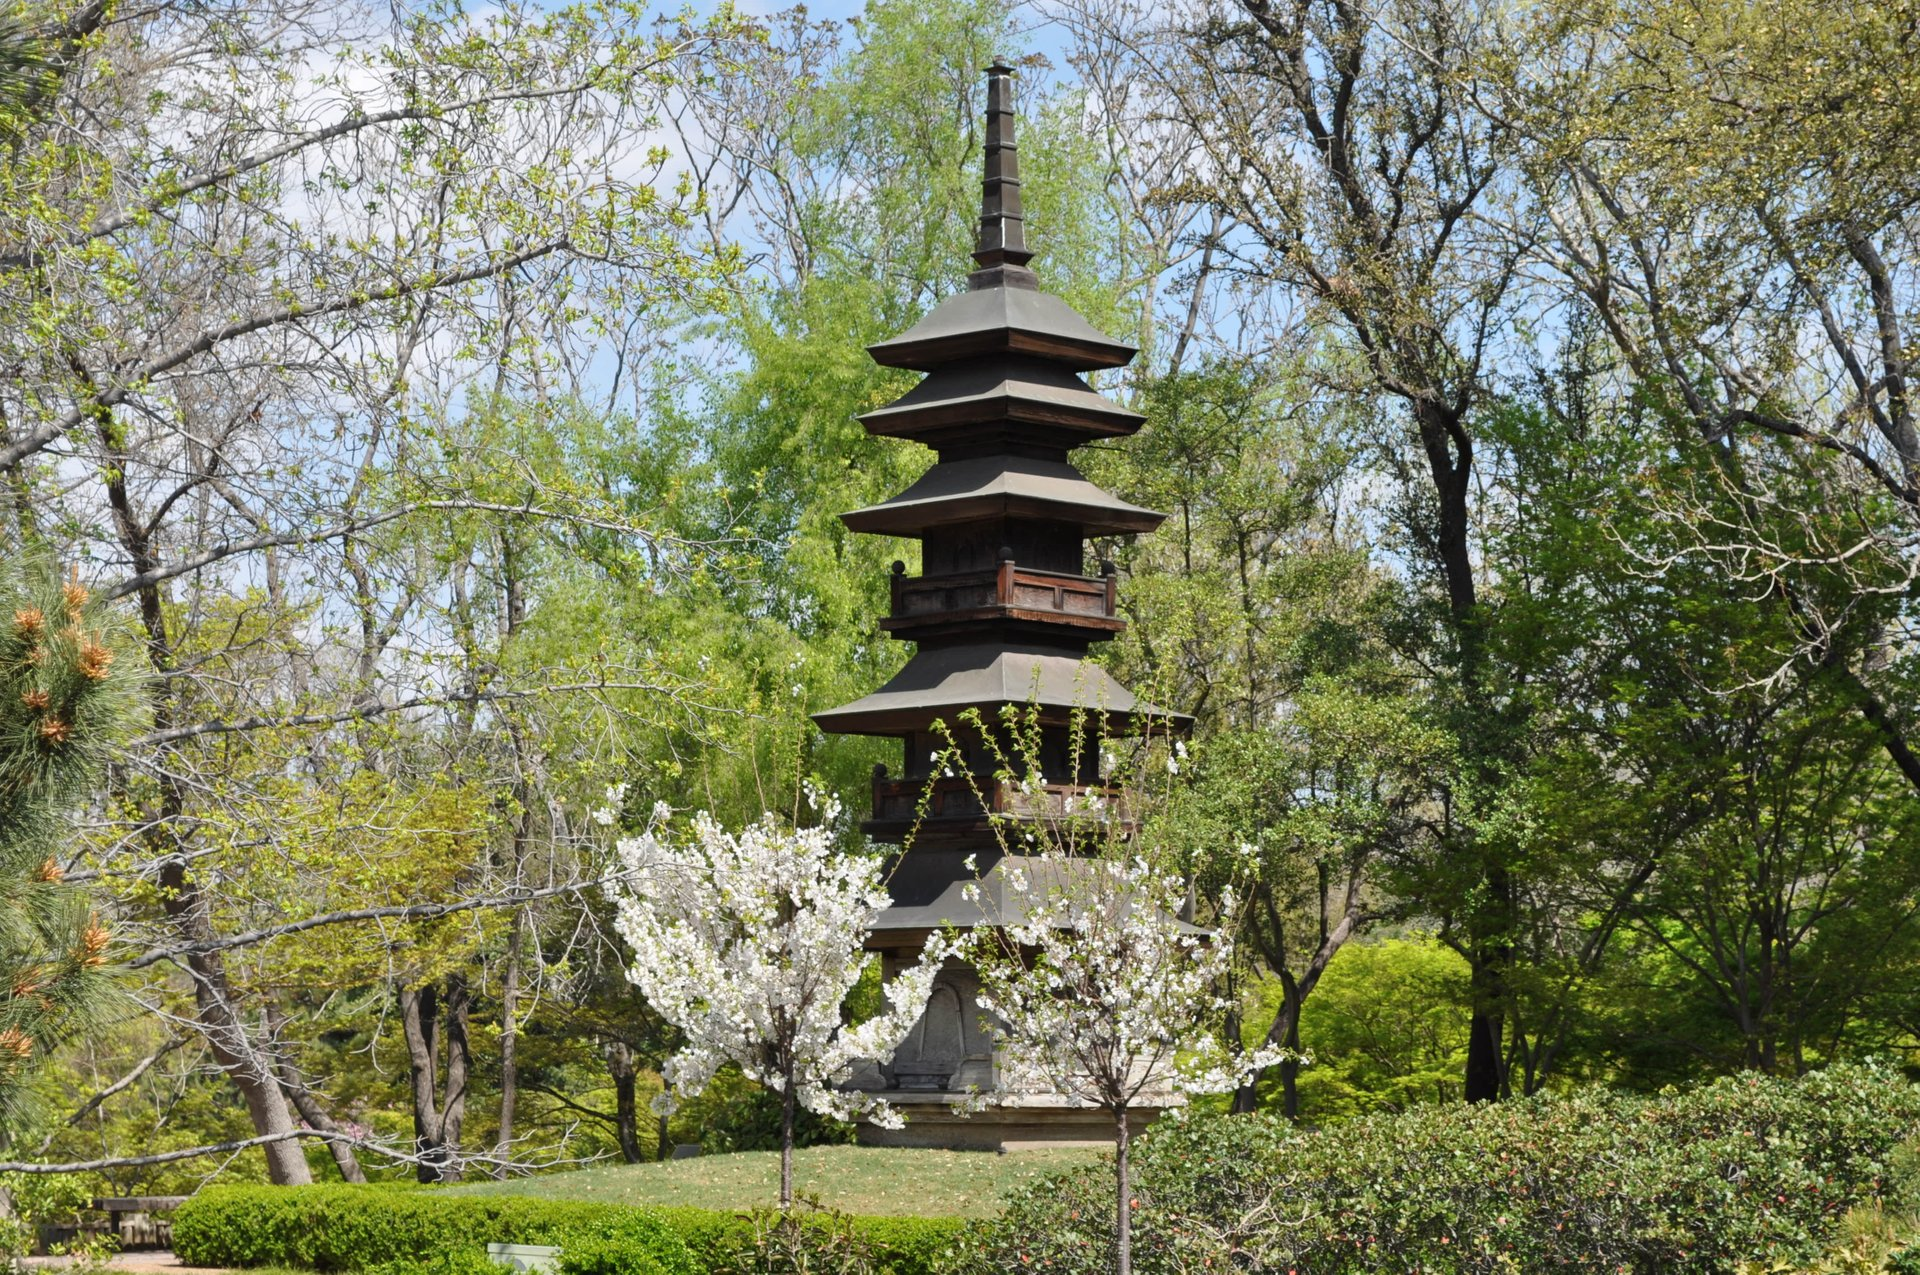 Japanese Garden in Fort Worth 2020